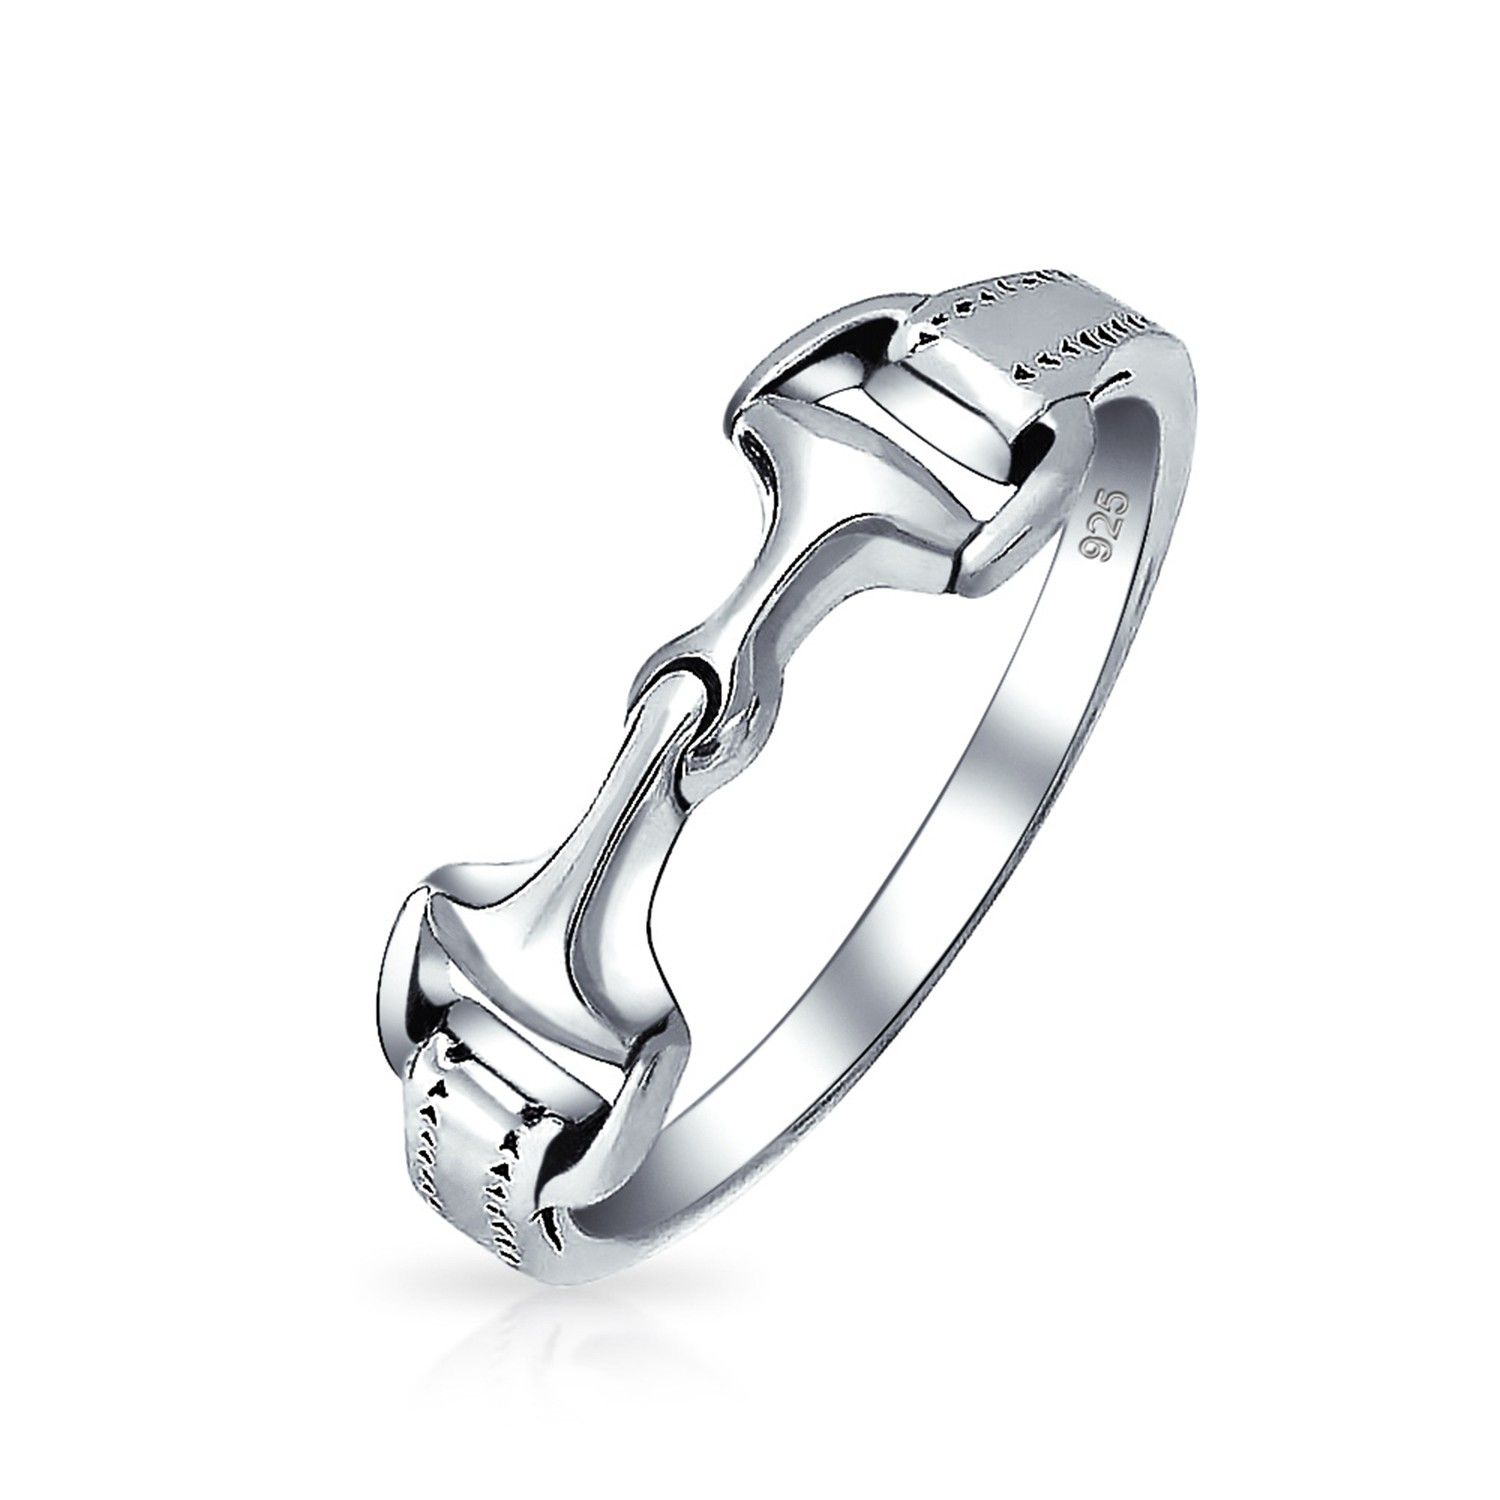 Double Horsebit Equestrain Ring 925 Sterling Silver Band